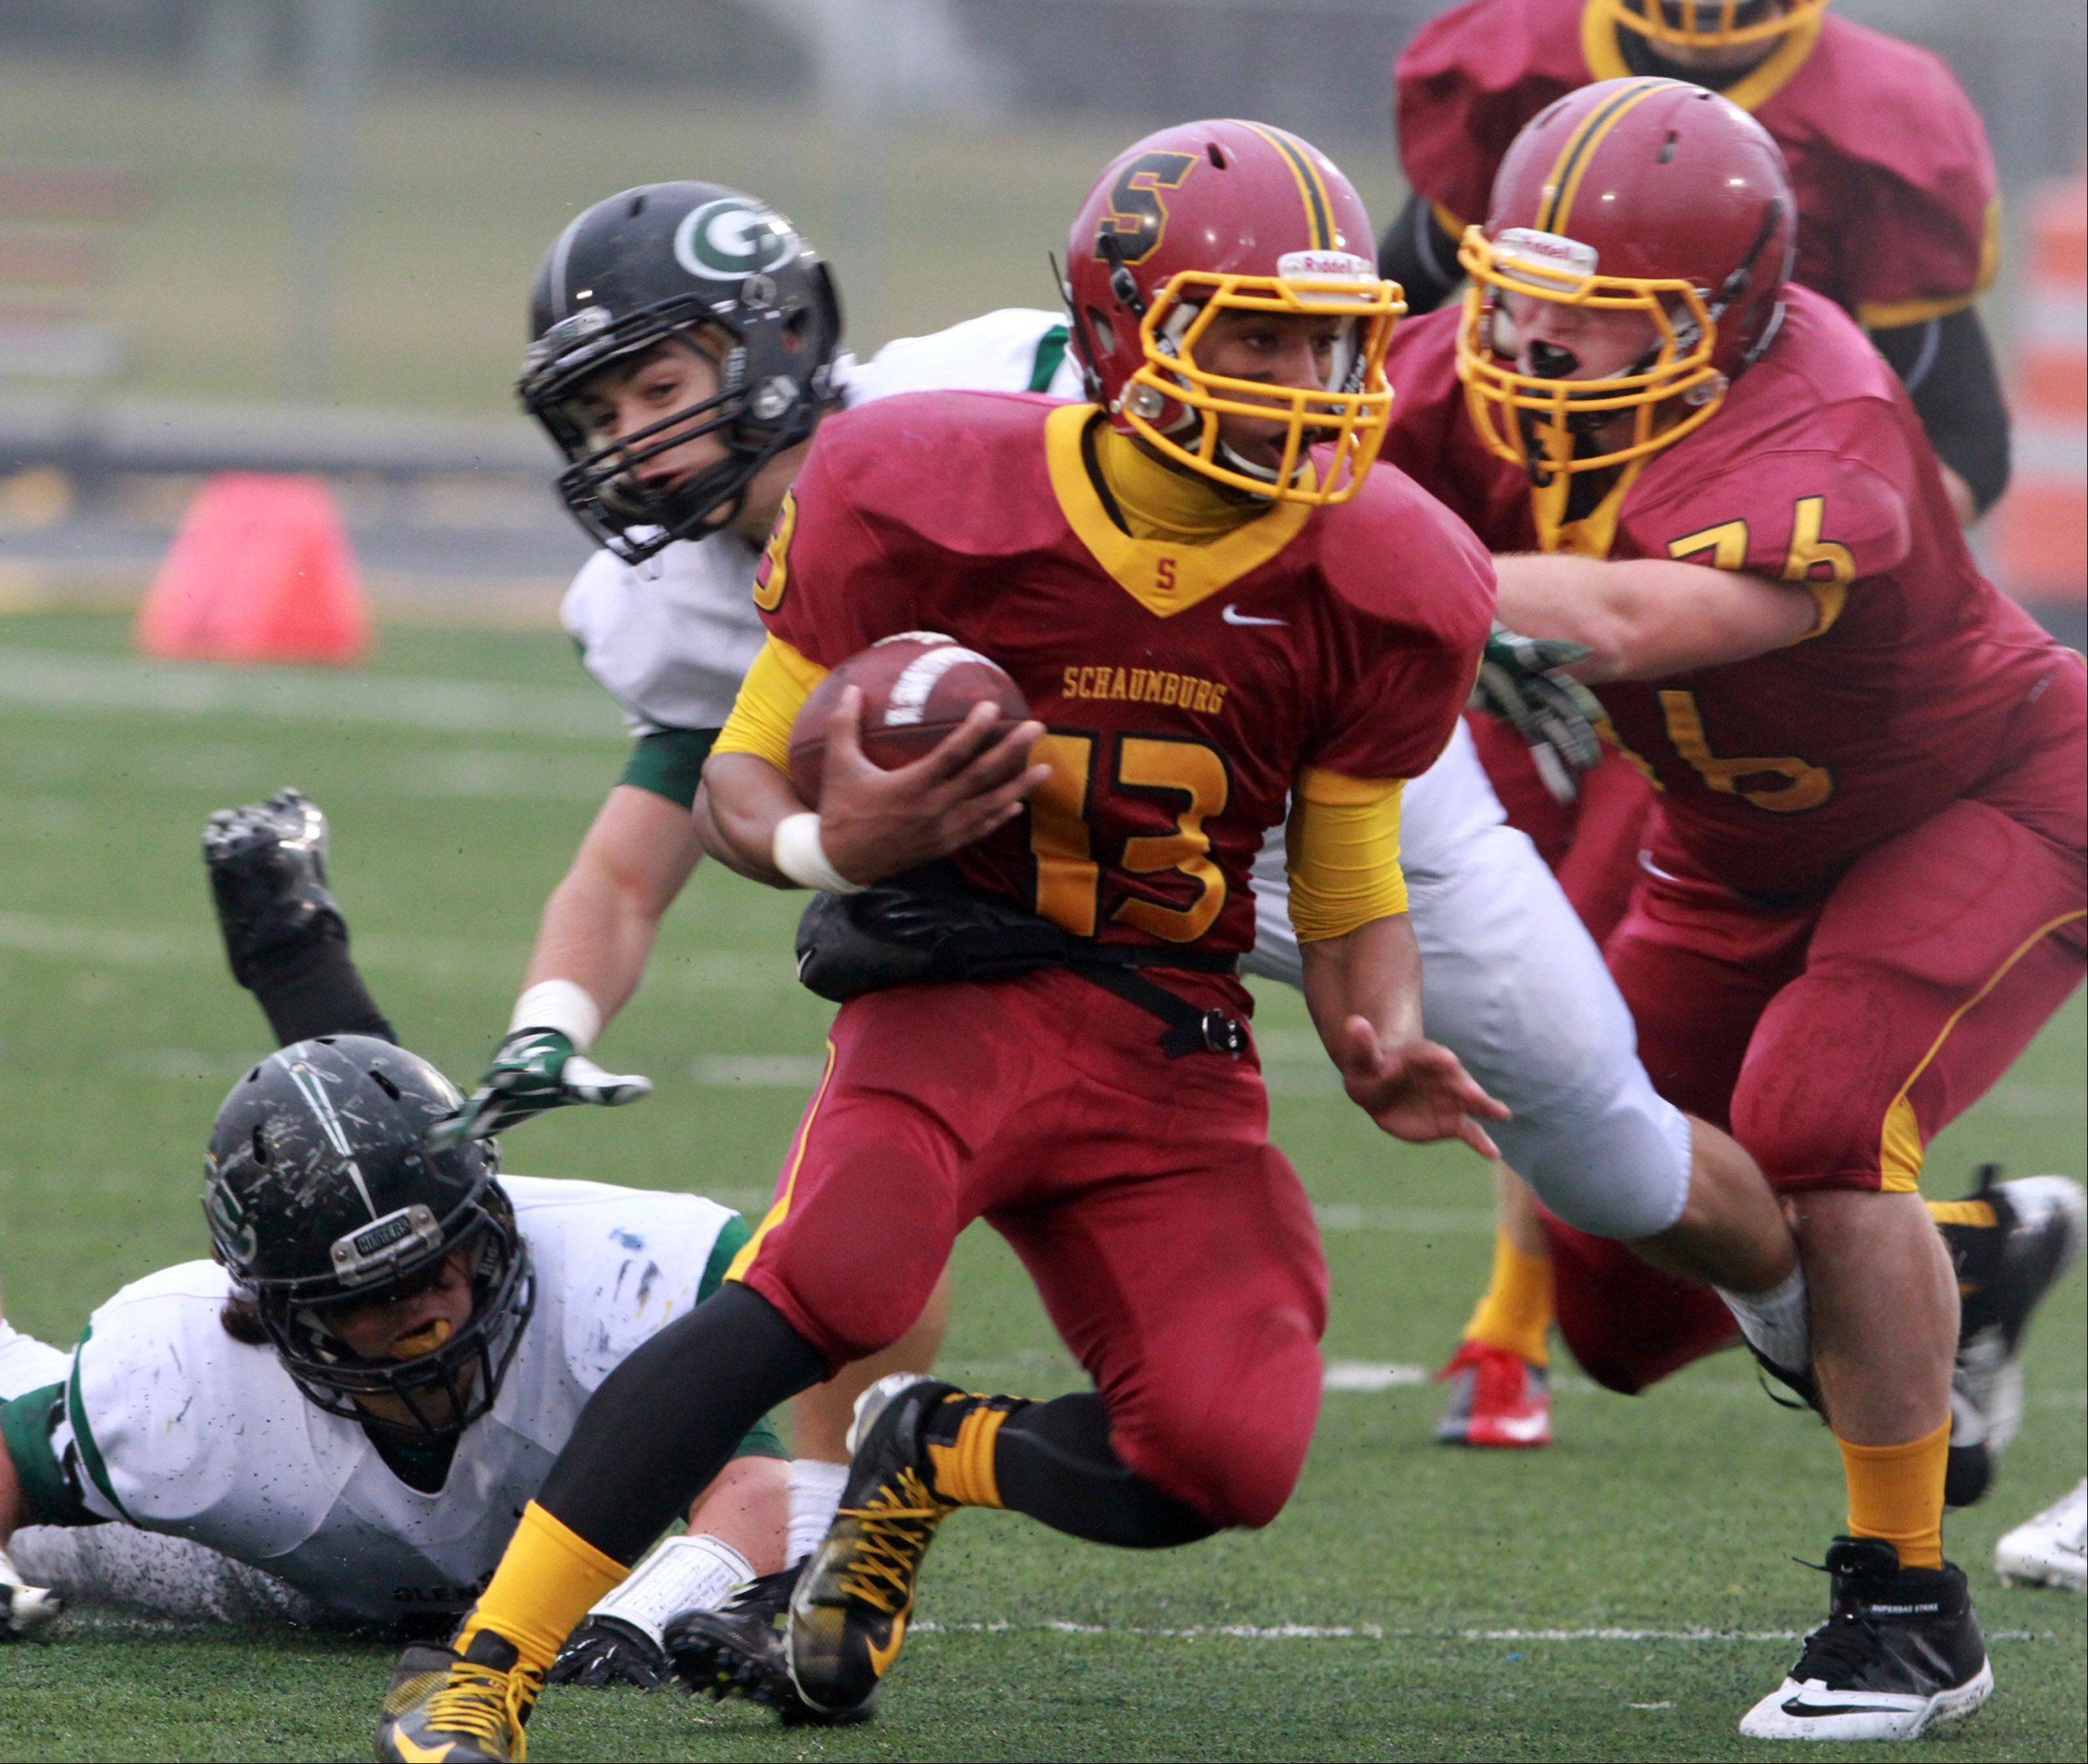 Schaumburg quarterback Stacey Smith Jr runs the ball against Glenbard West.